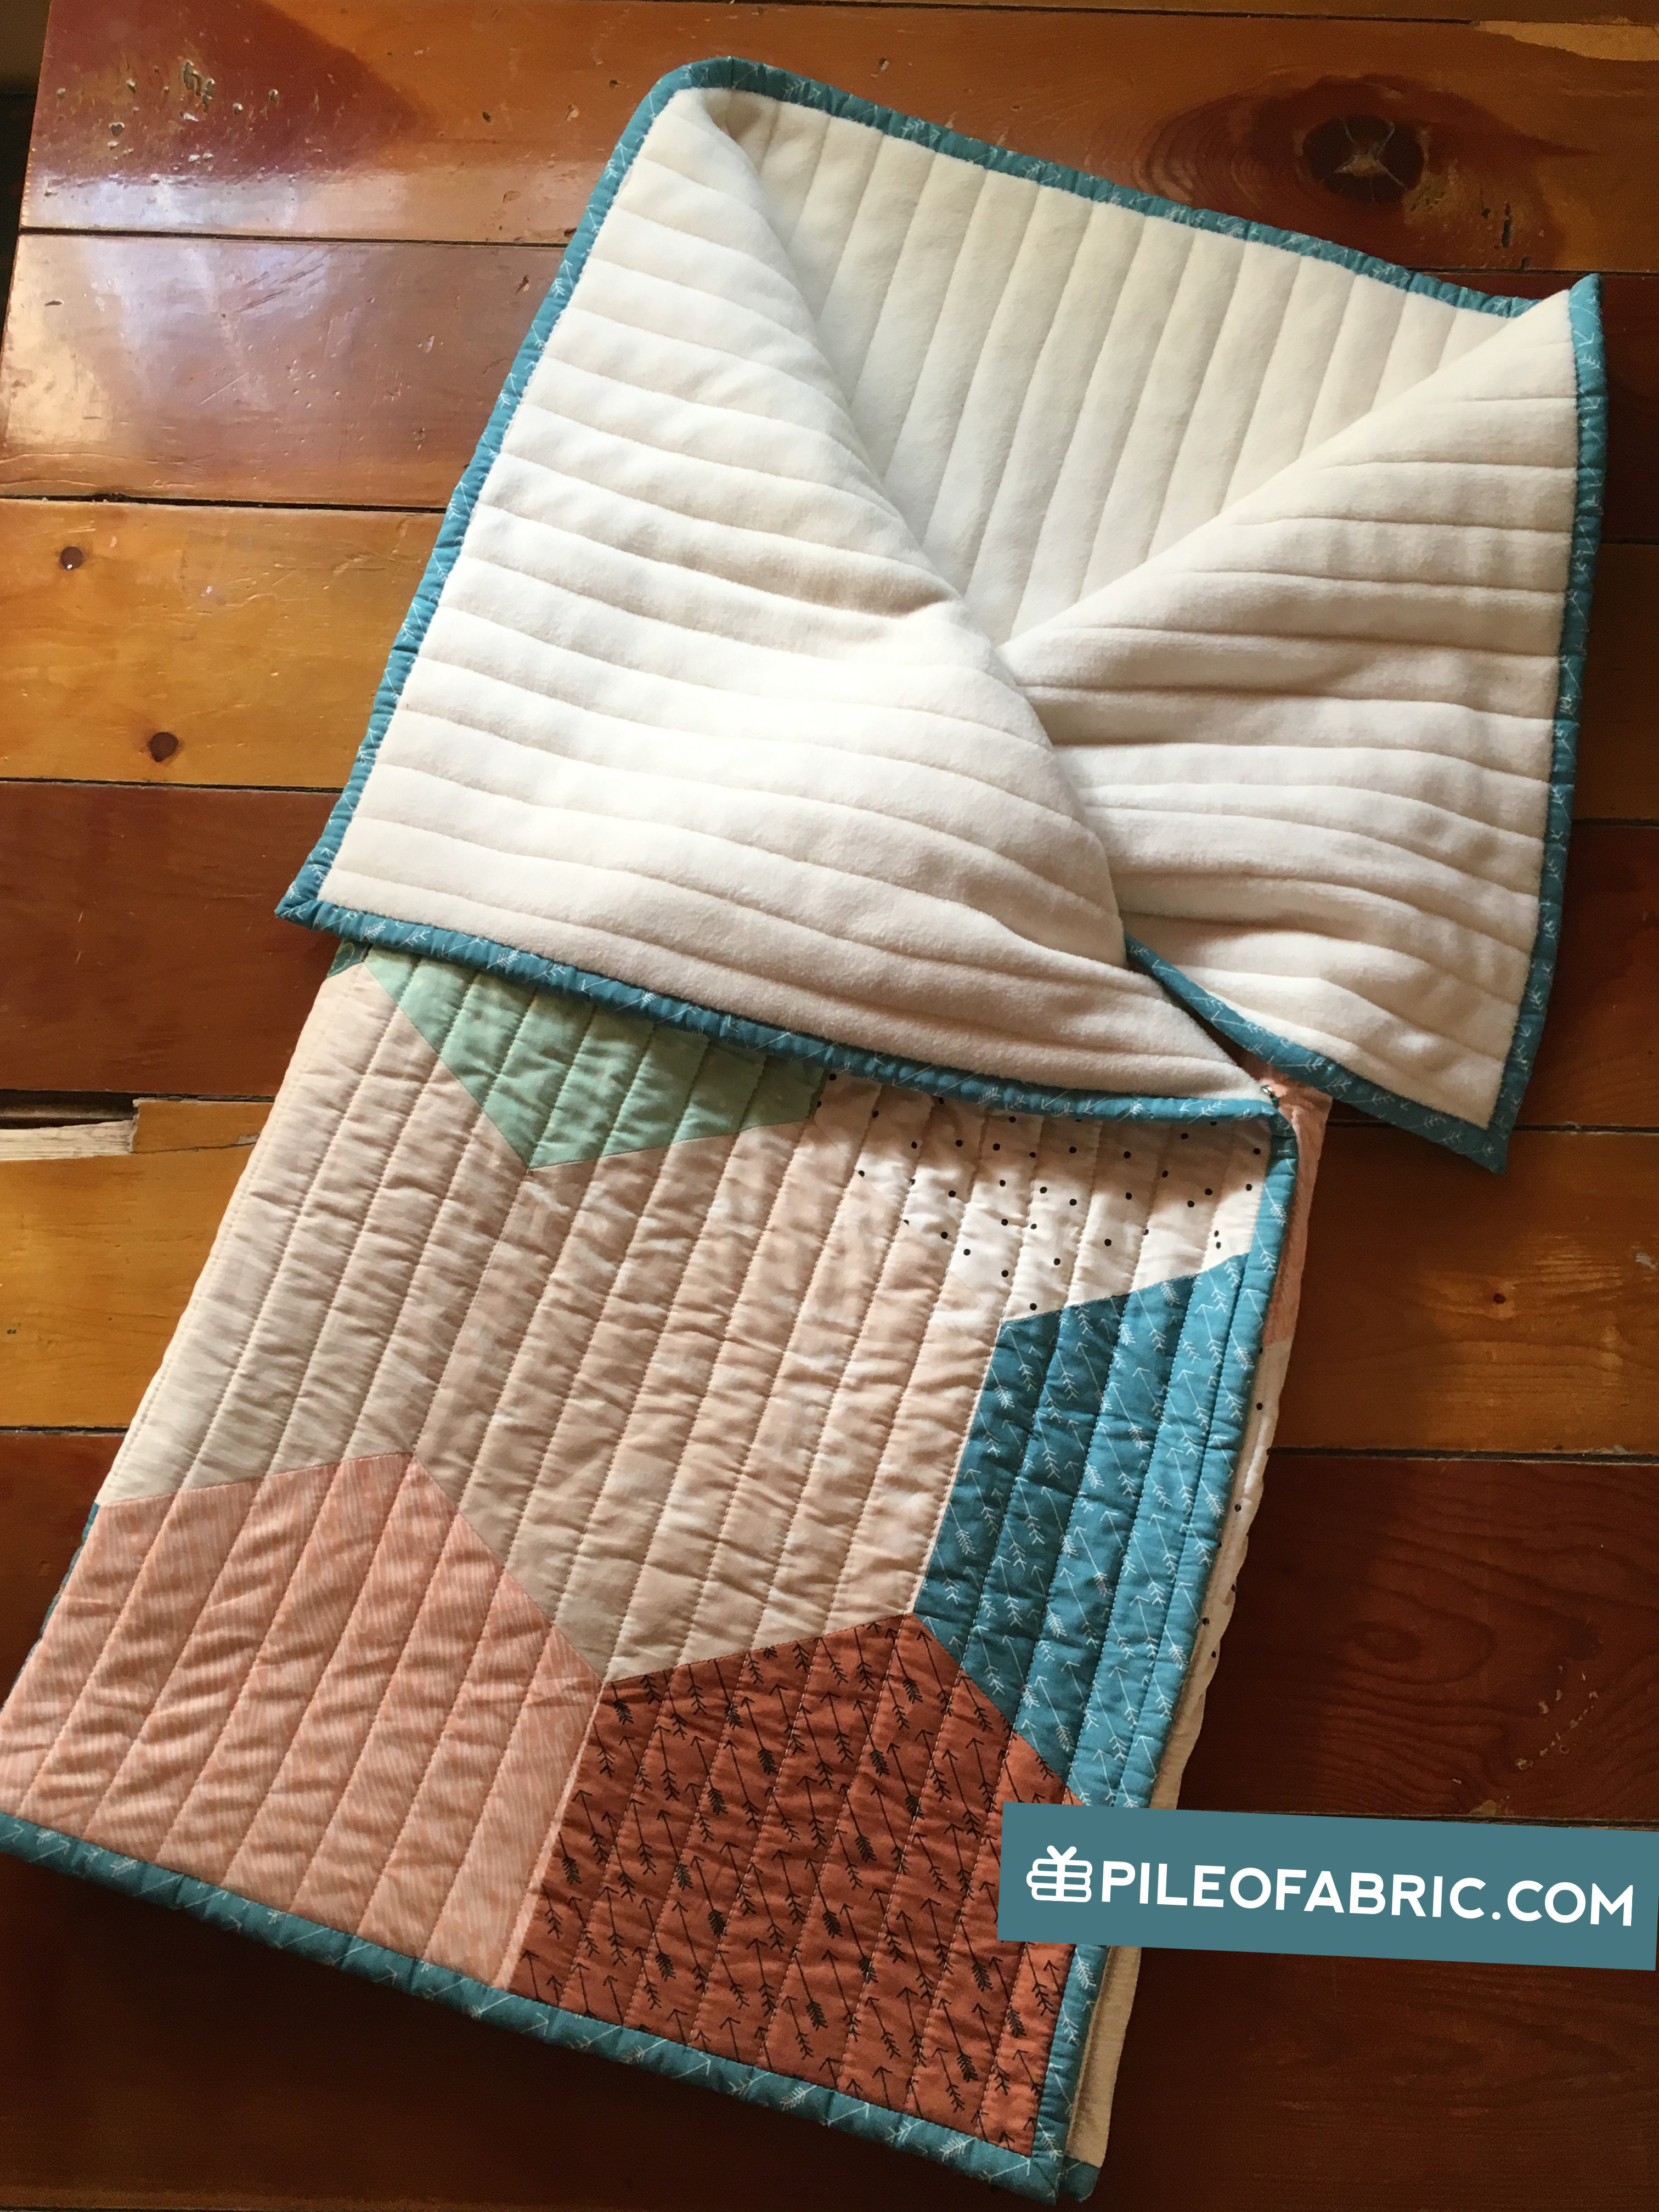 Converting A Quilt To A Baby Sleeping Bag Tutorial Pile O Fabric